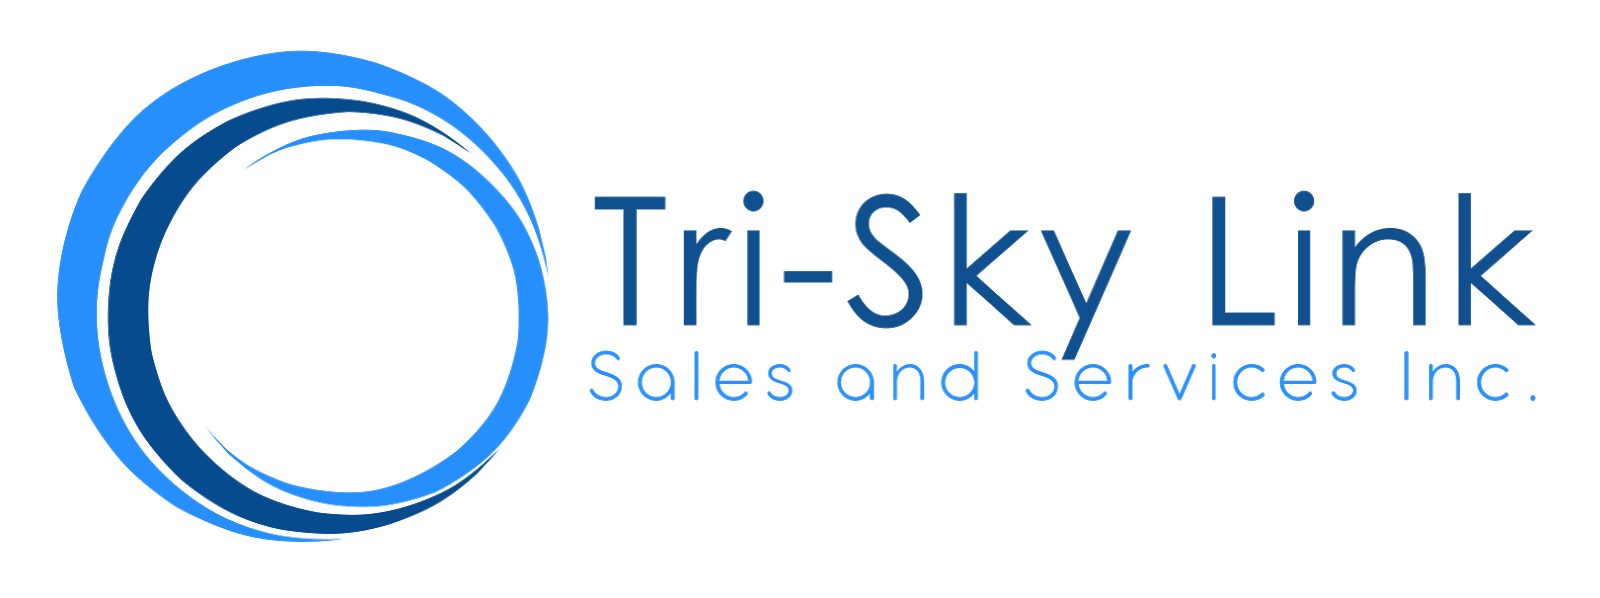 Tri-Sky Link Sales and Services Inc.